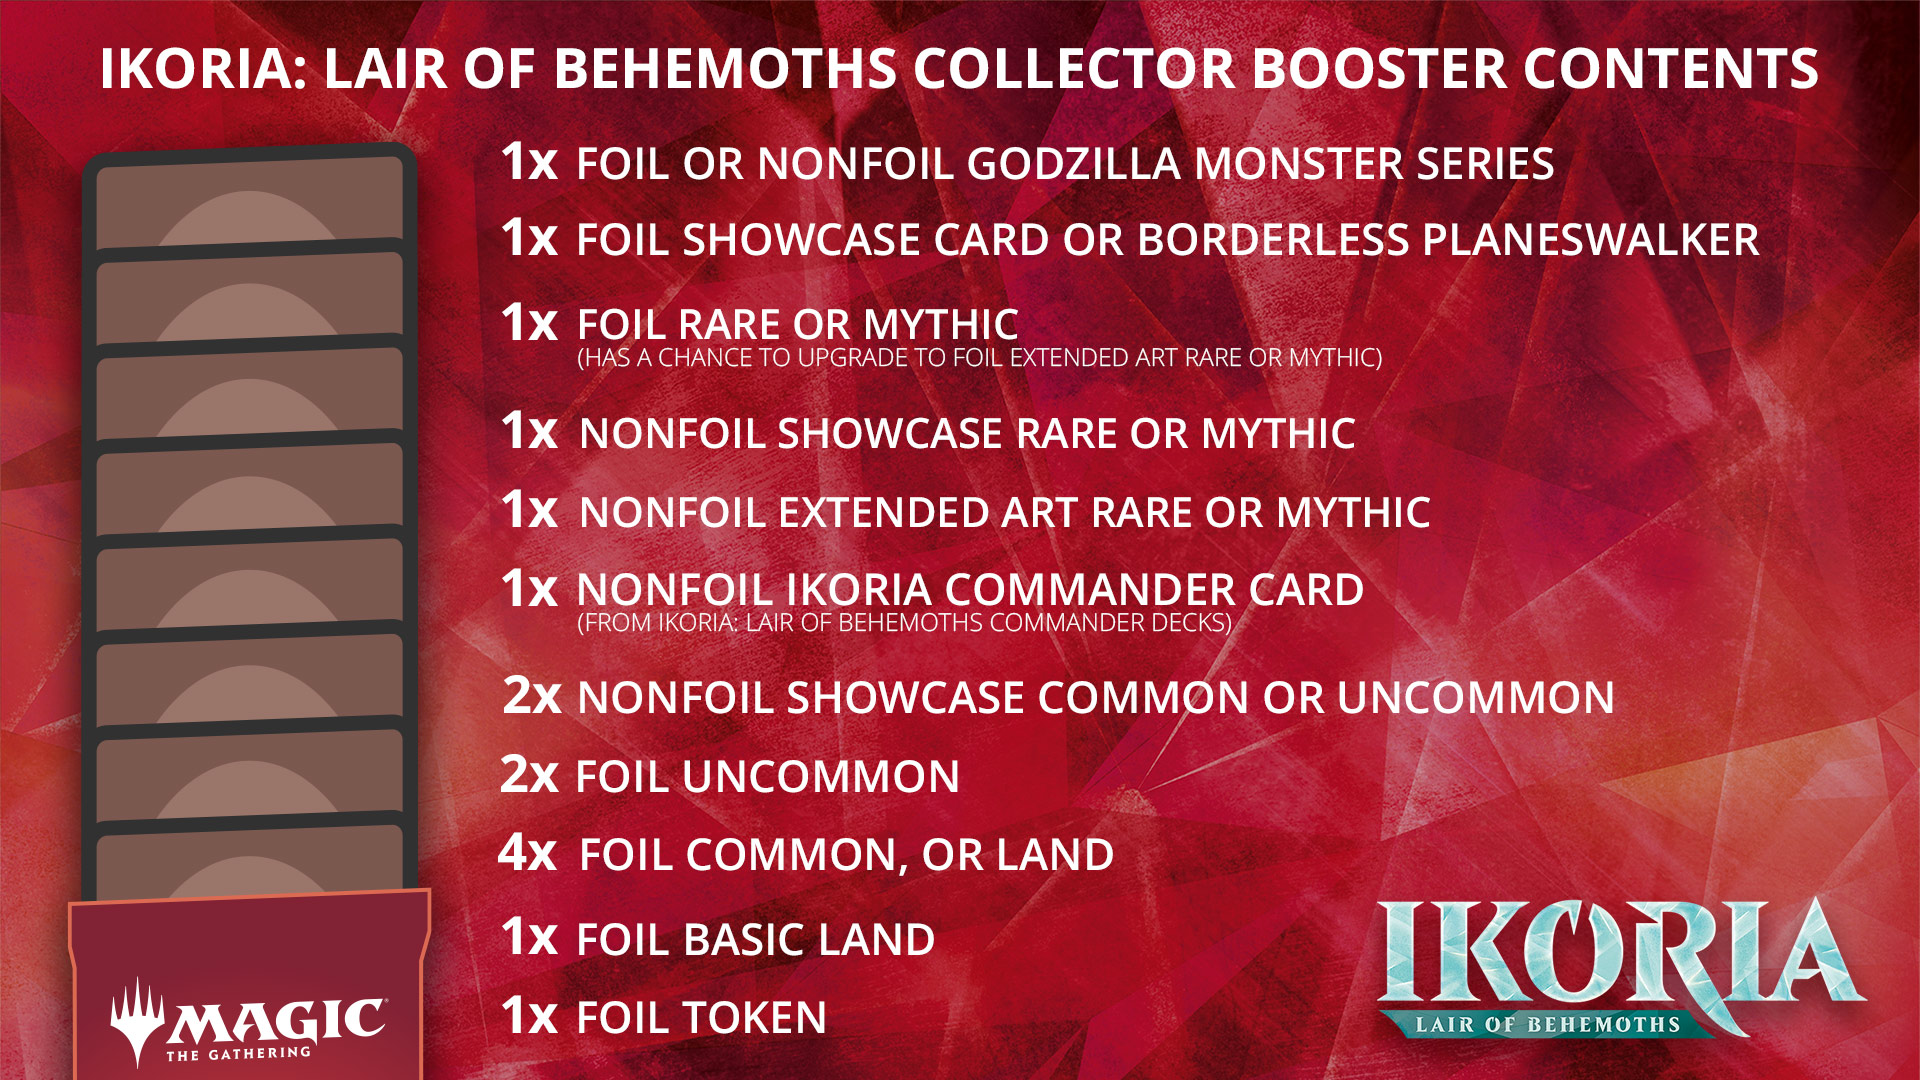 Collector Booster info